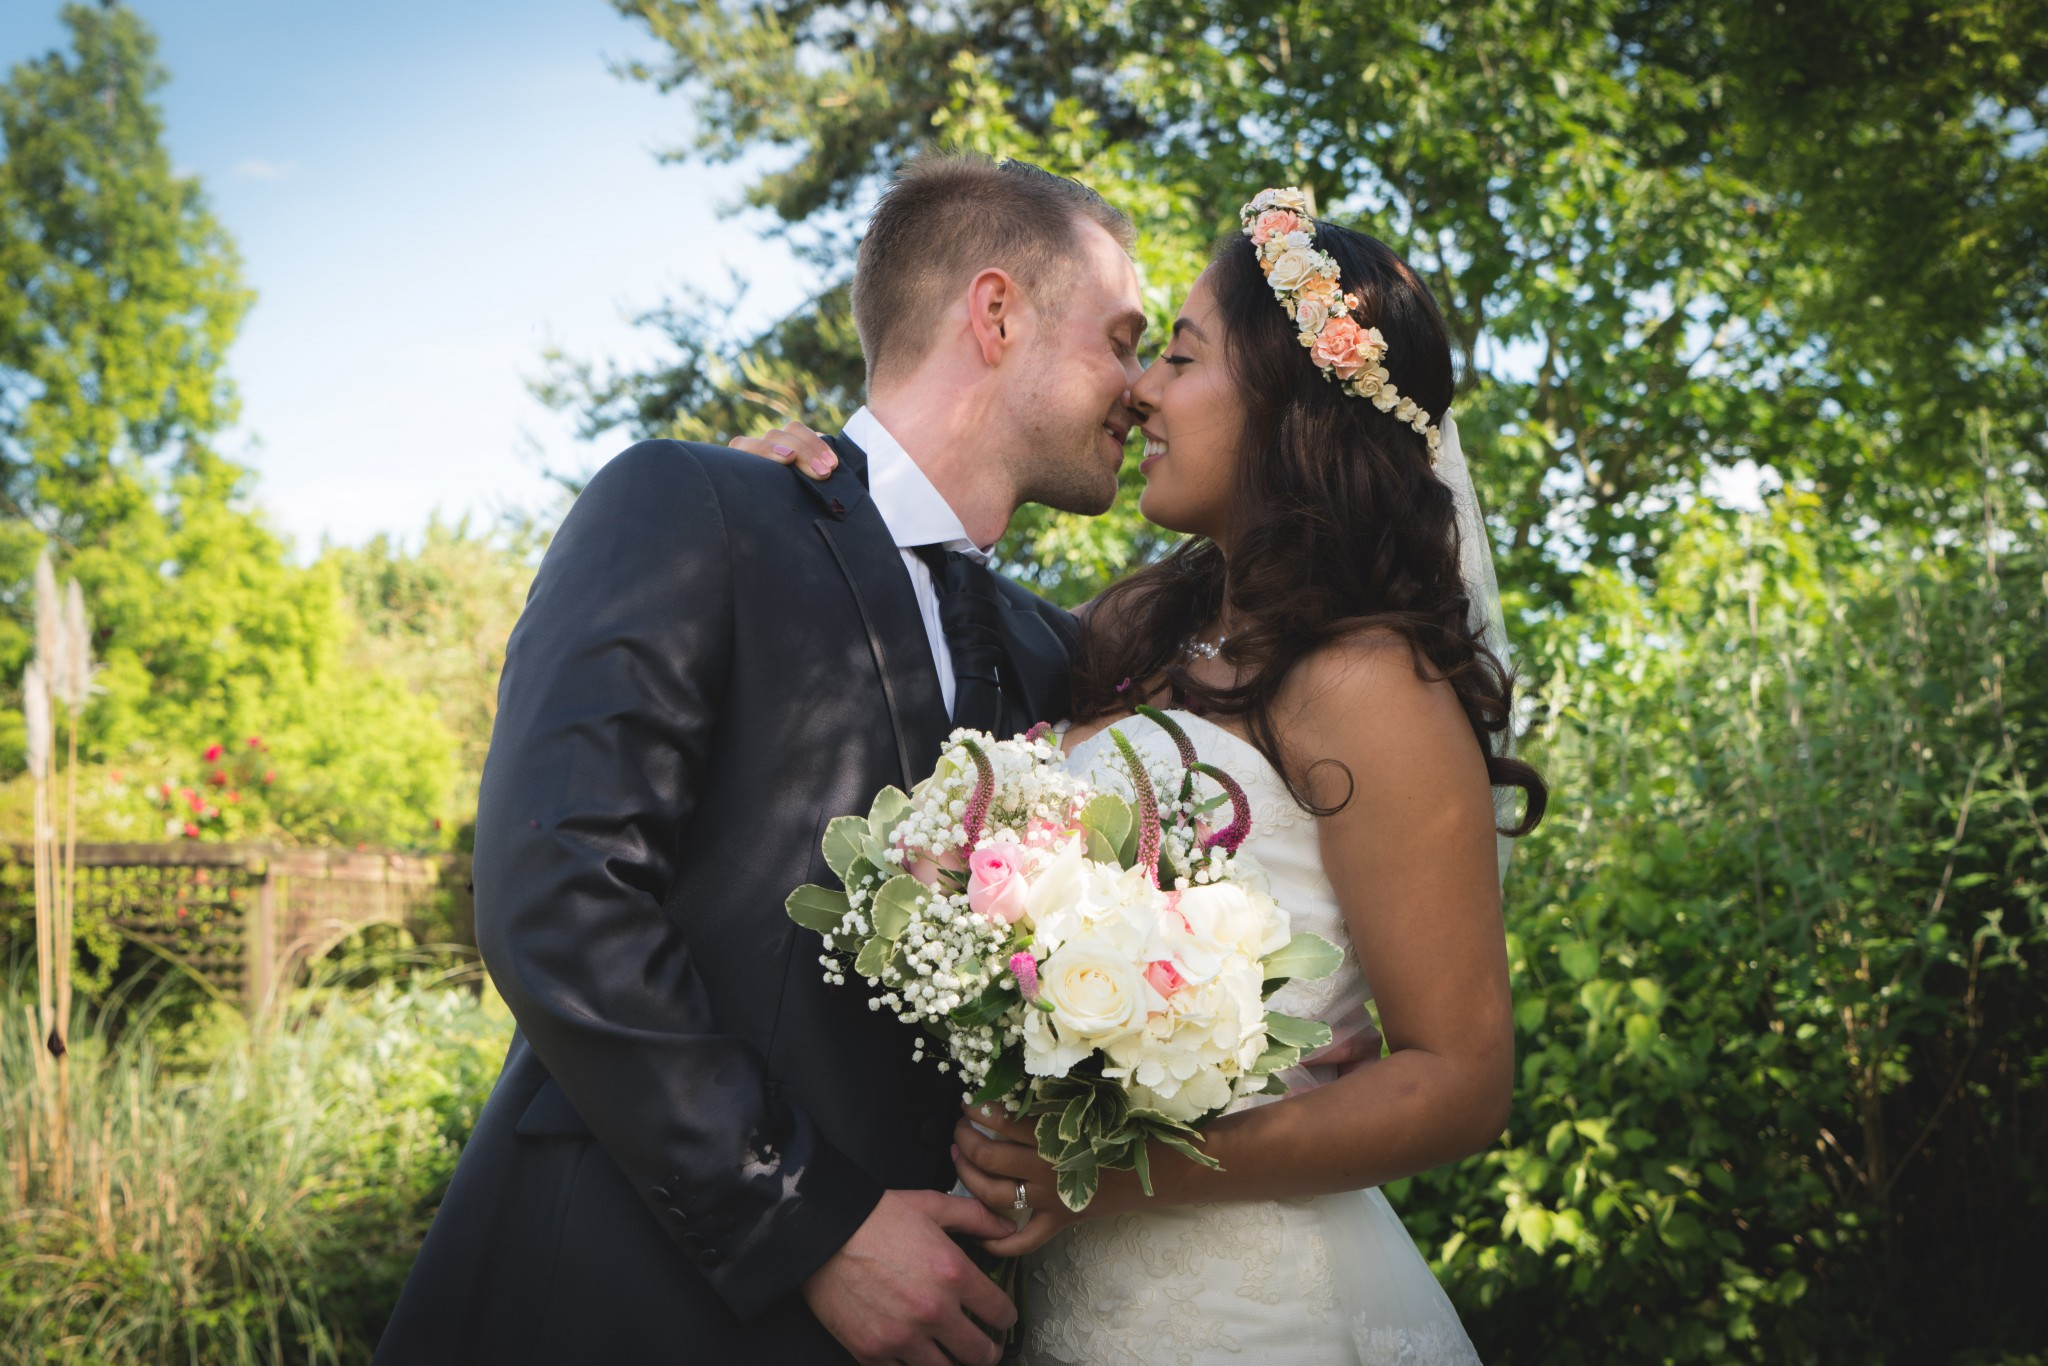 Wedding Photographers Photography Videography In Kettering Northamptonshire Videographers Near Milton Keynes